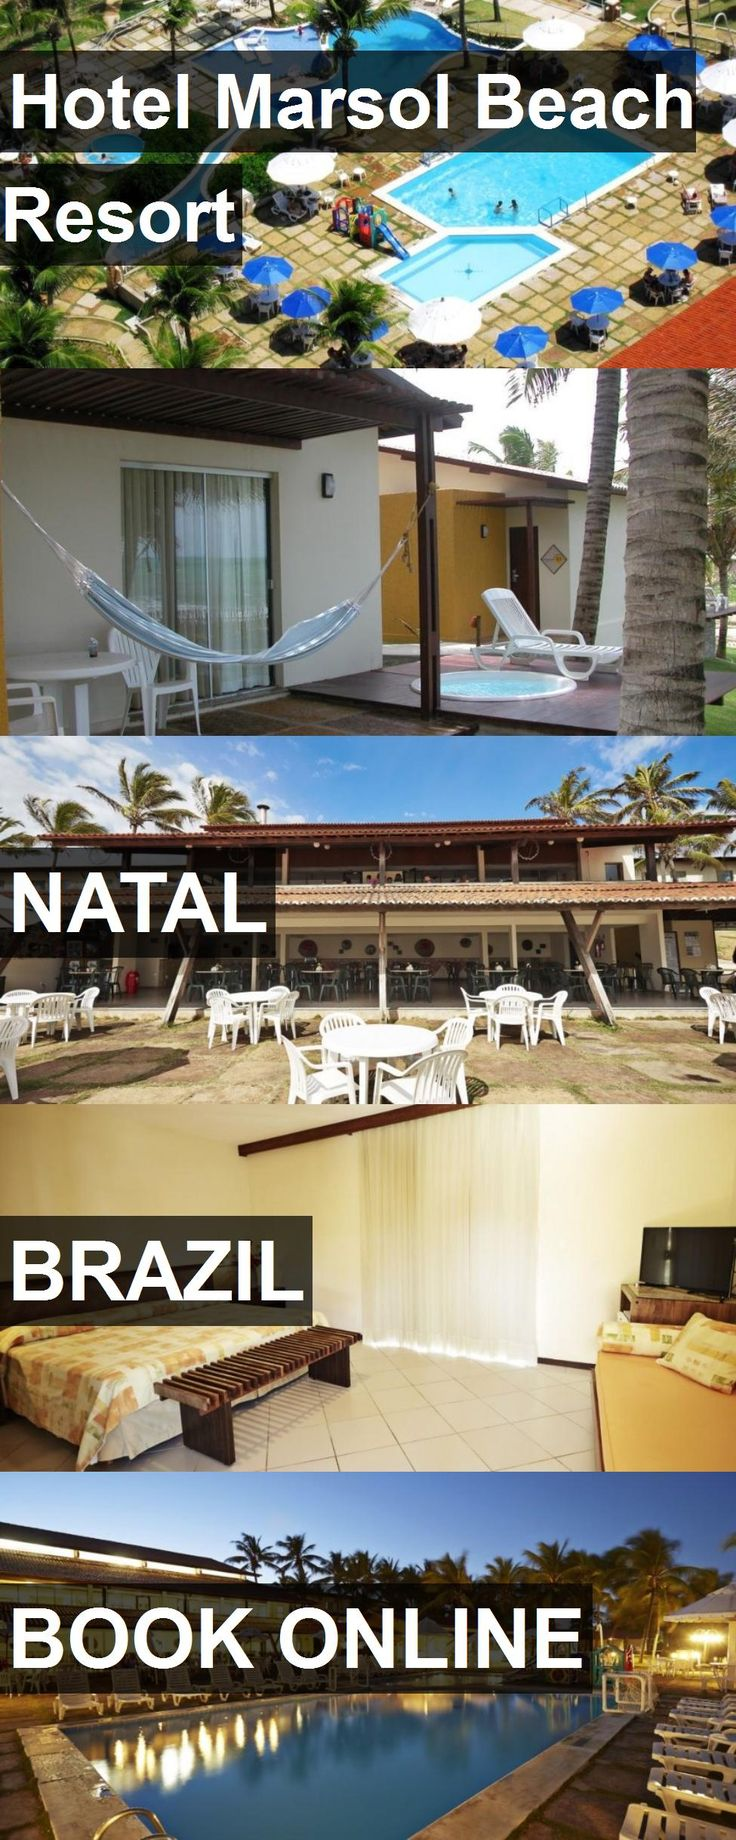 Hotel Hotel Marsol Beach Resort in Natal, Brazil. For more information, photos, reviews and best prices please follow the link. #Brazil #Natal #HotelMarsolBeachResort #hotel #travel #vacation